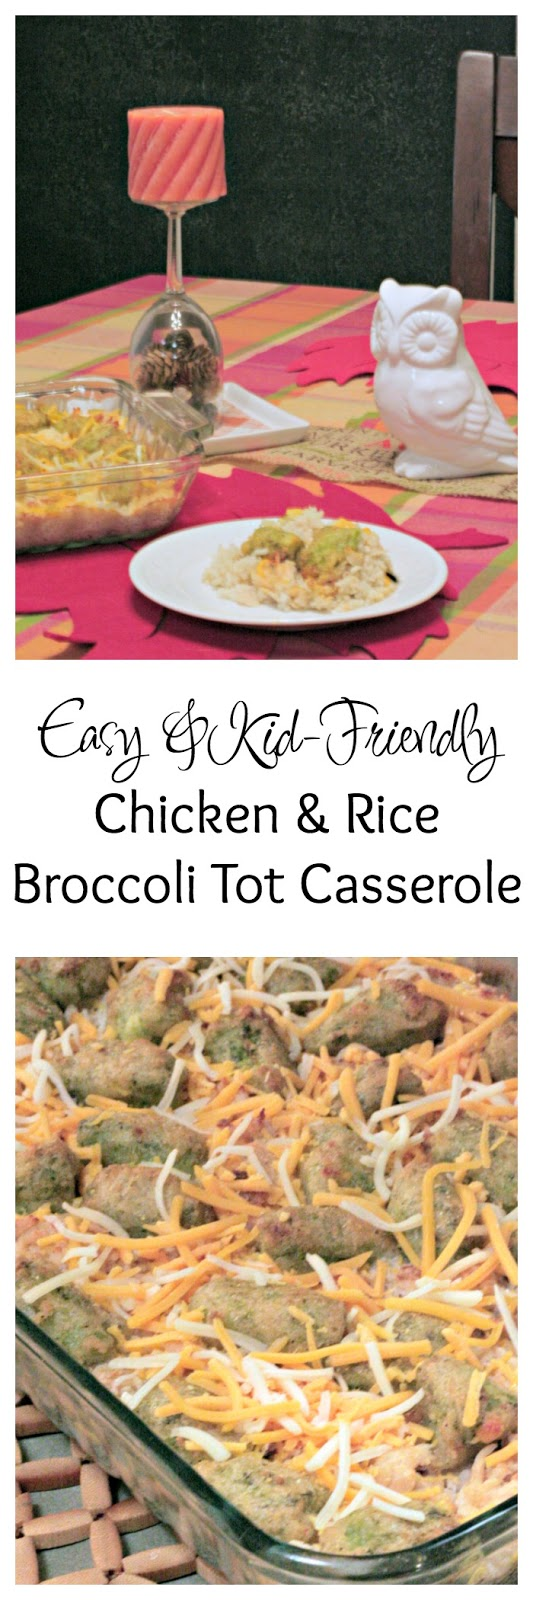 Chicken and Rice broccoli tot casserole, Easy casseroles to add vegetables in, how to get more vegetables into my kids, great recipes for green giant broccoli tots, What can I cook with broccoli tots, Kid friendly vegetable recipes